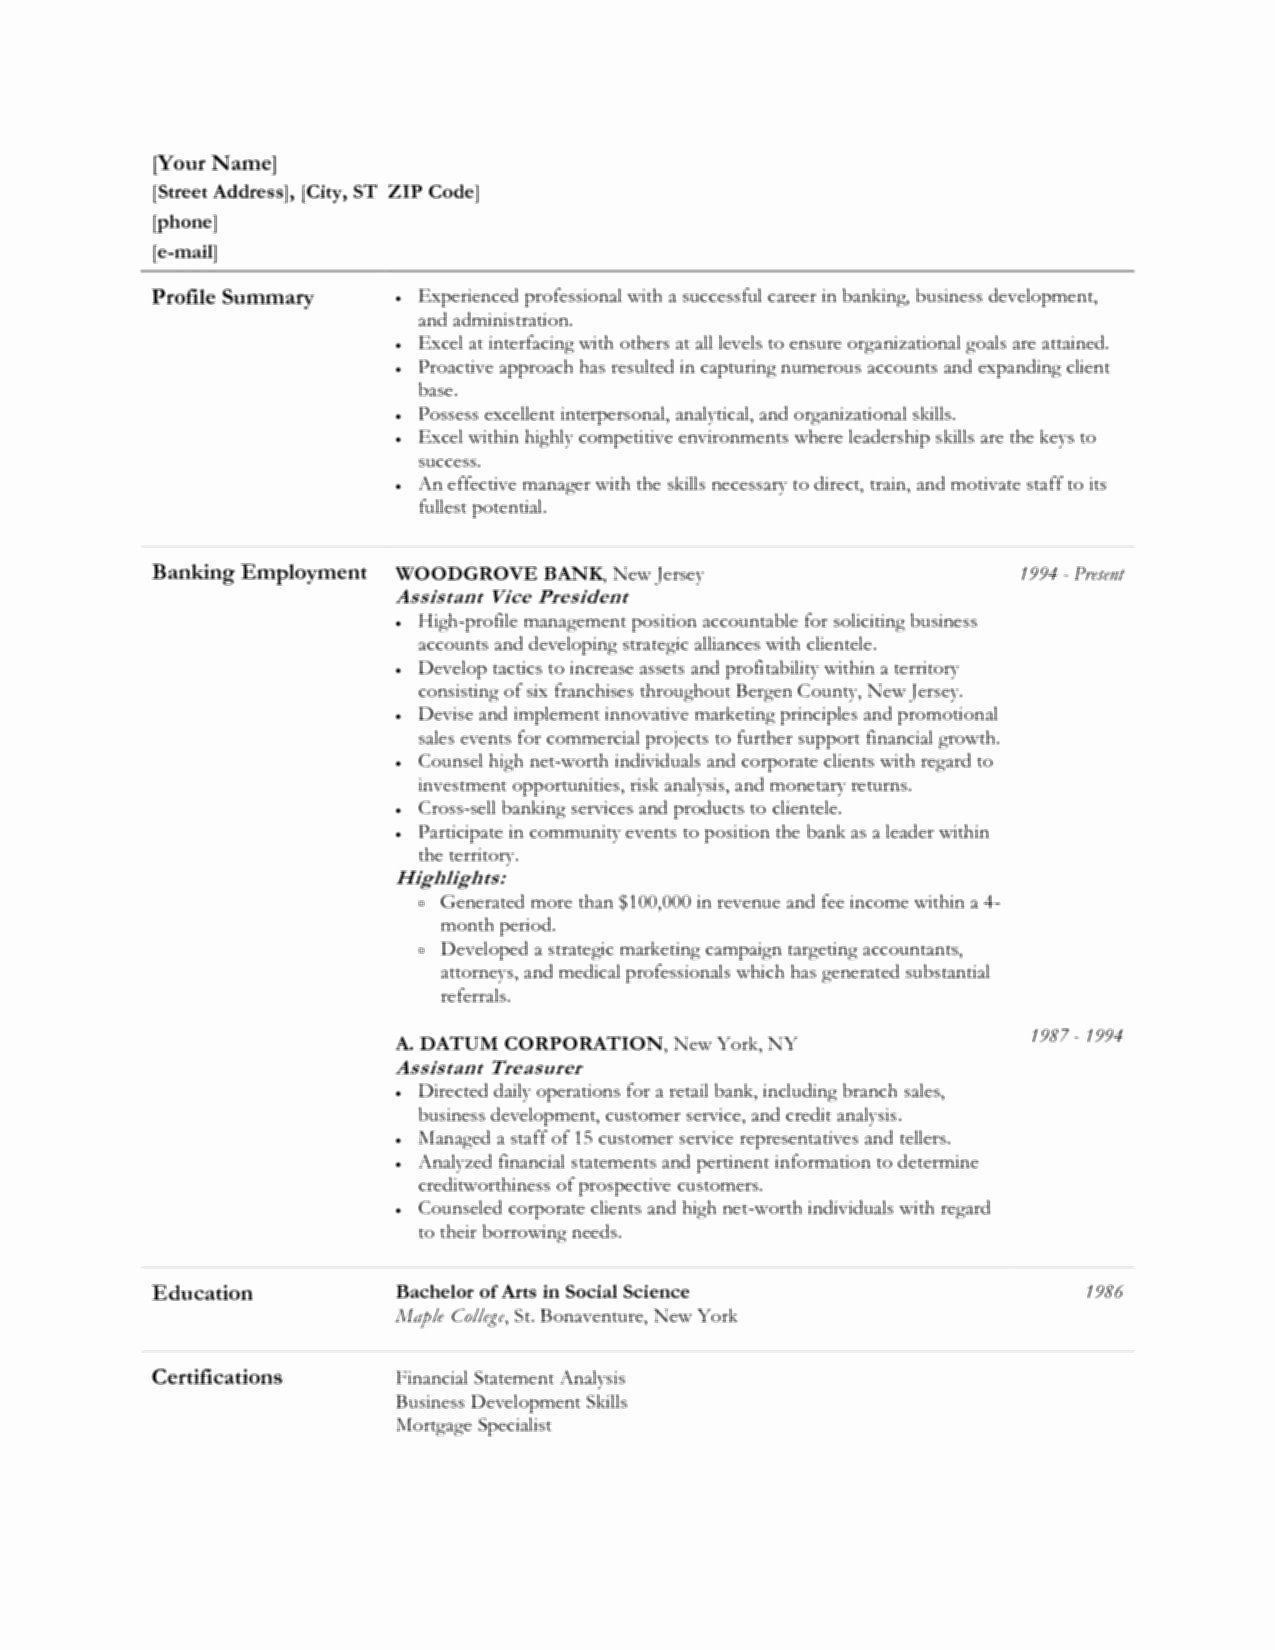 Bank Teller Resume Objective Examples In 2021 Resume Objective Statement Bank Teller Resume Job Resume Examples